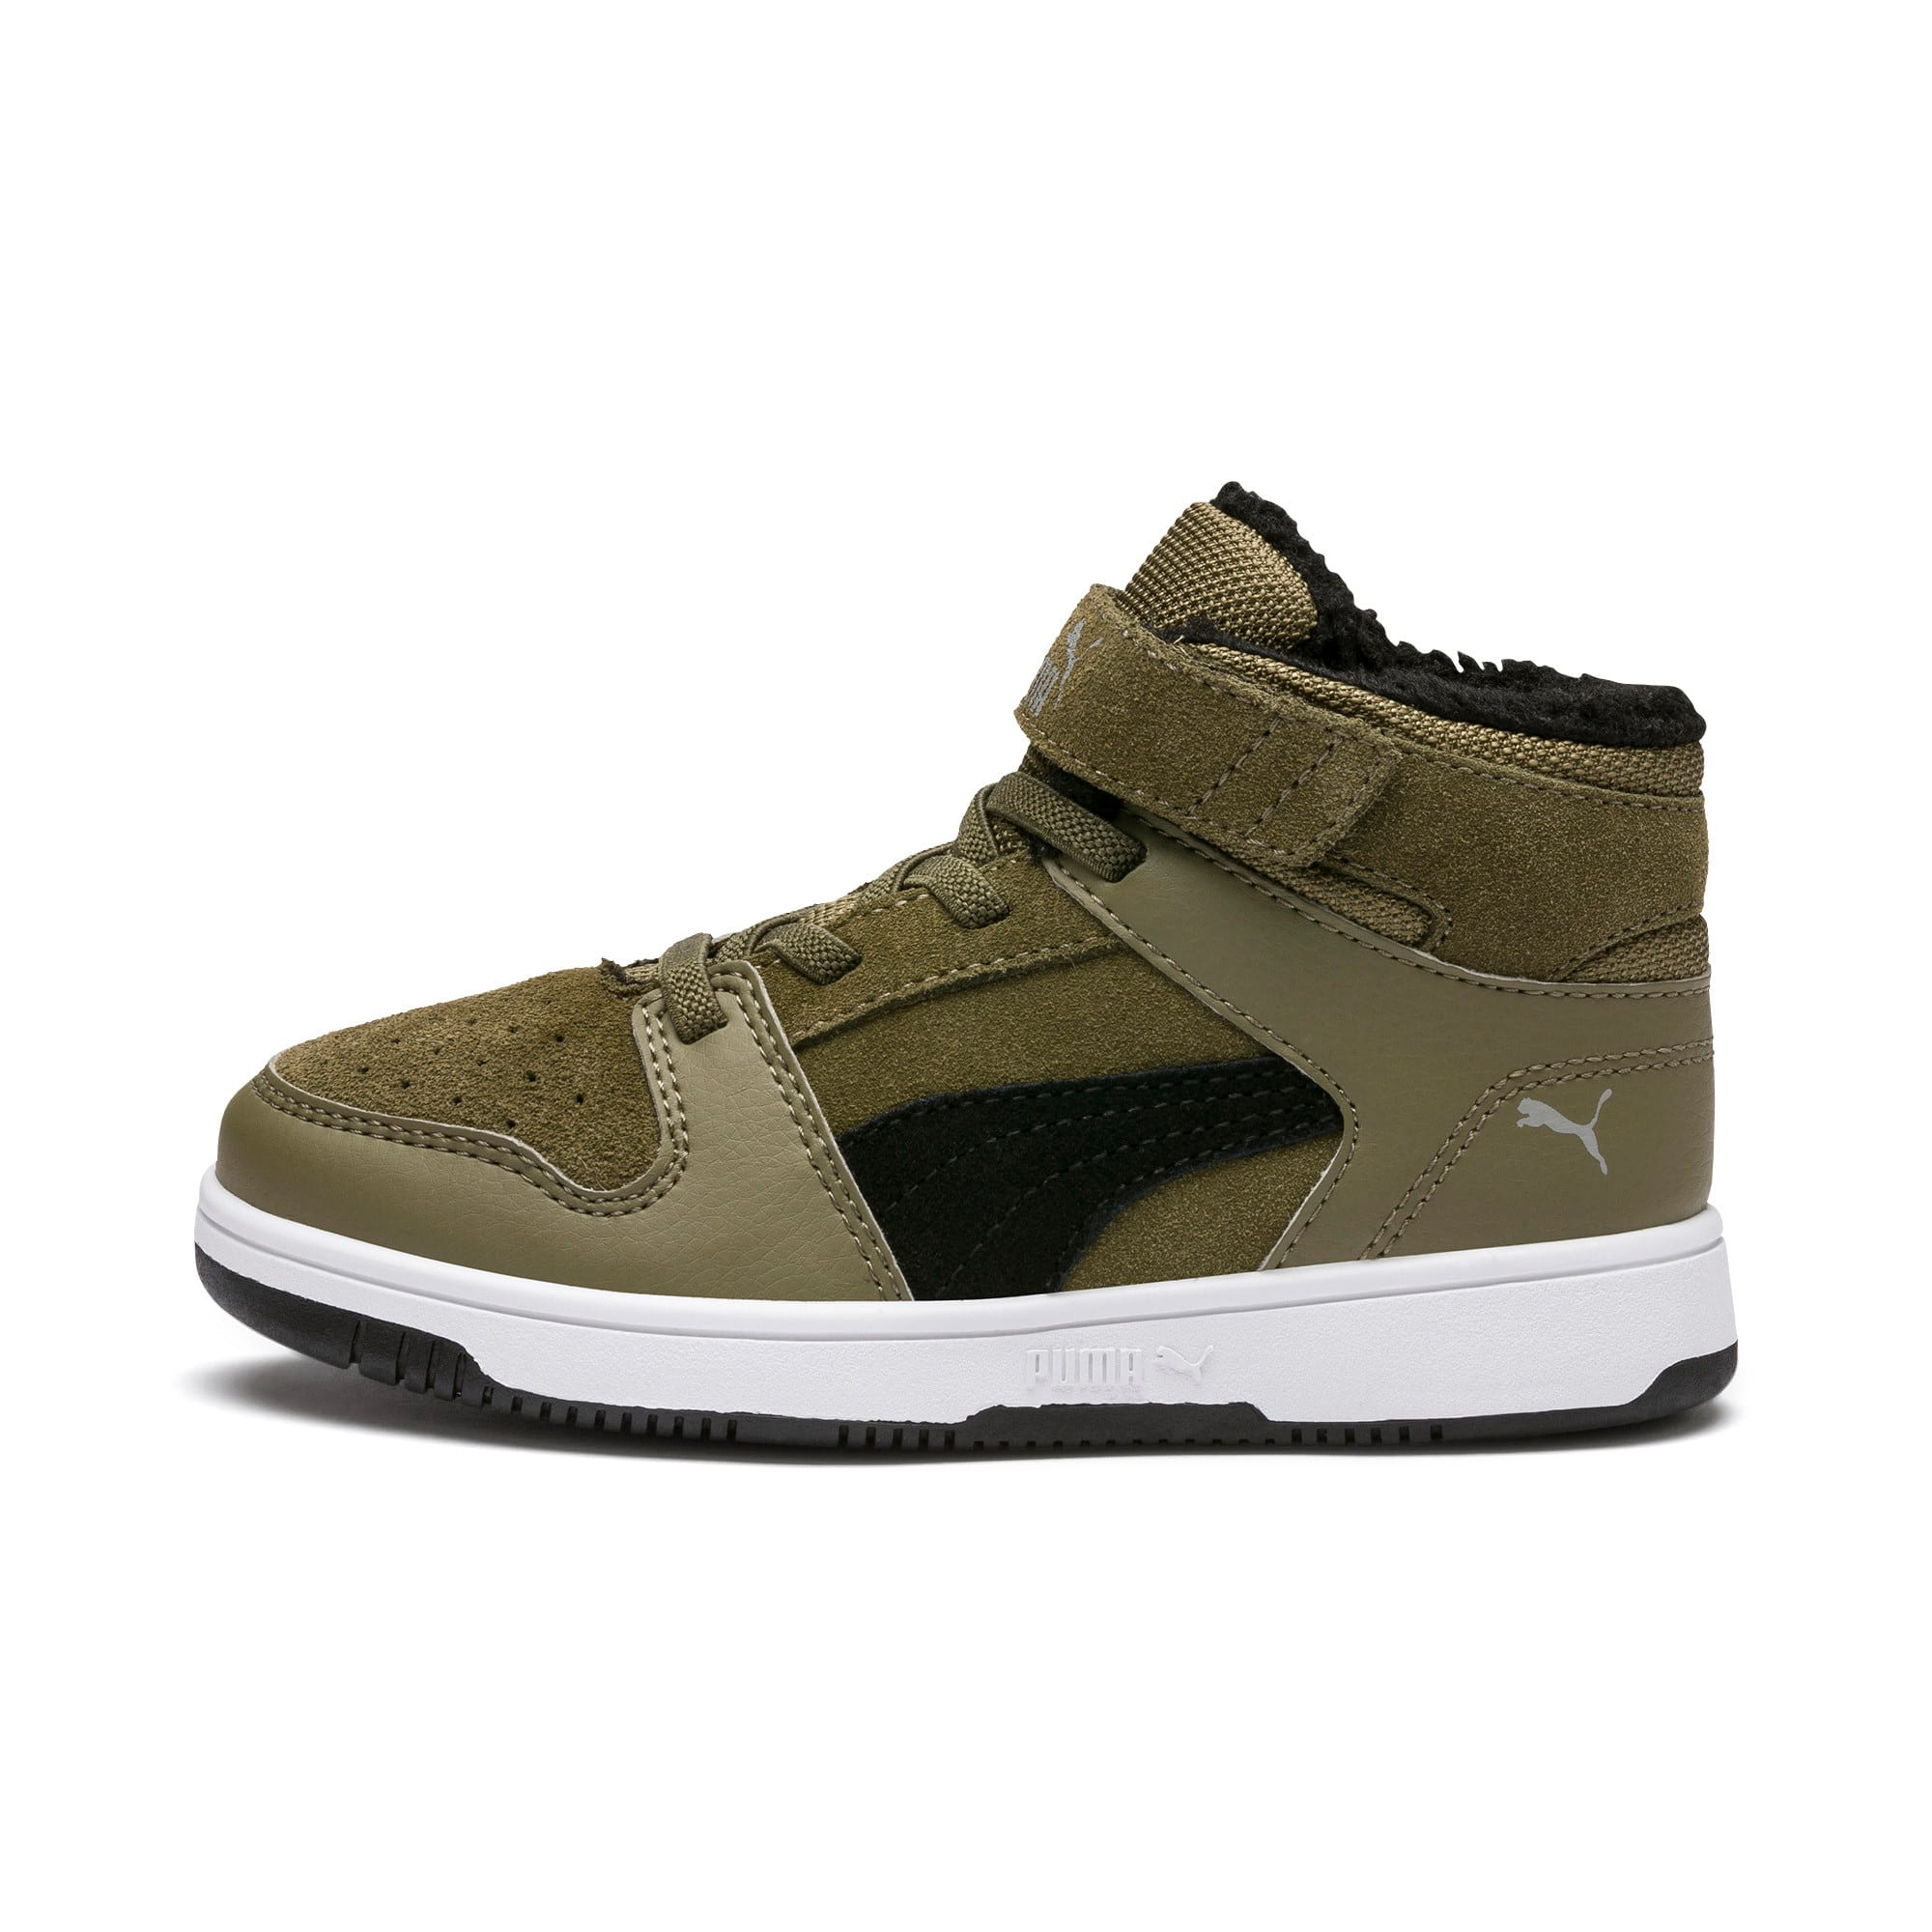 Thumbnail 1 of Rebound Lay-Up Fur V Kids' Trainers, B Olive-Black-Limestone-Wht, medium